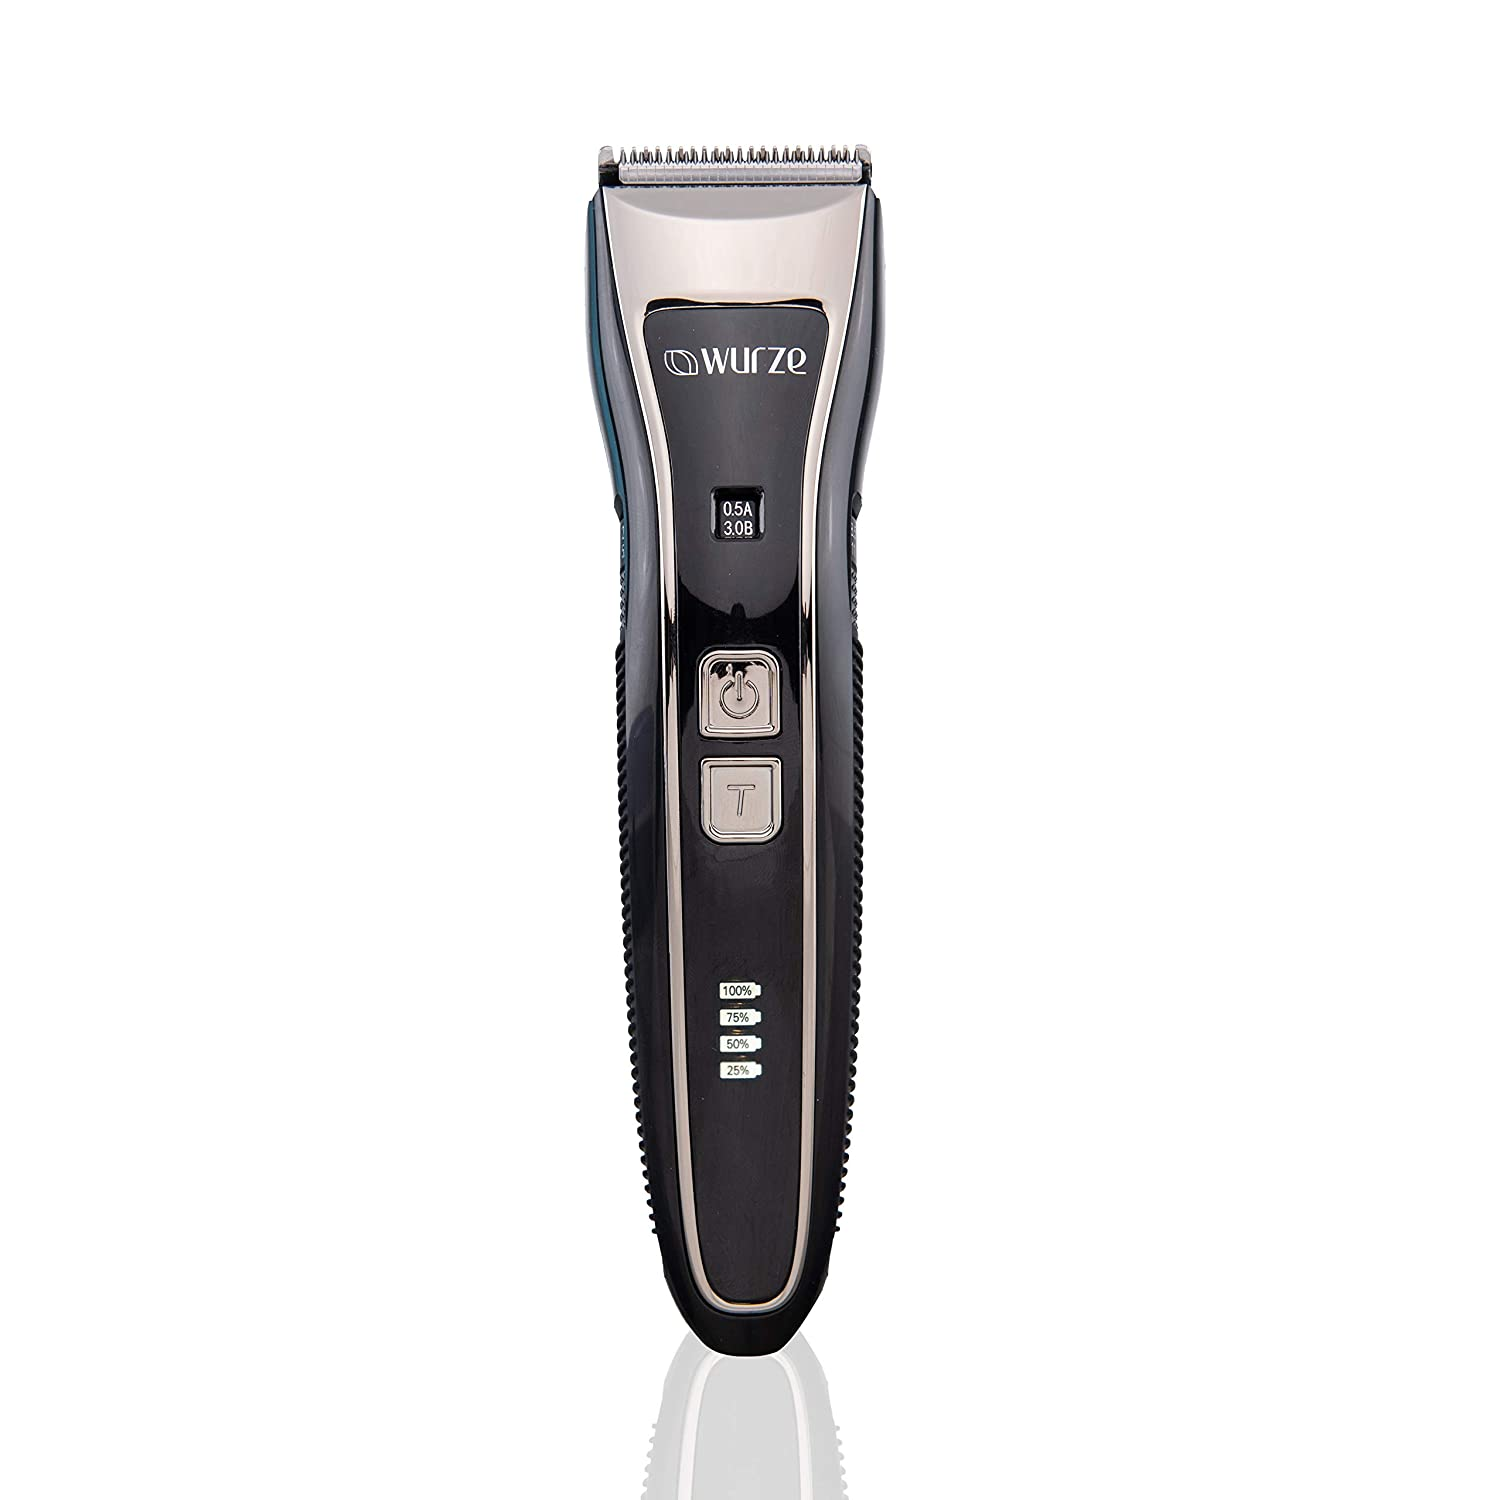 WURZE 1904 Wet & Dry Cordless Electric Hair Trimmer for Beard &Hair(Men) -A UniqueMultiGroomer - 2 SpecialCombs &40 settings - Rechargeable Lithium Battery with 90 min Usage& Charging Time